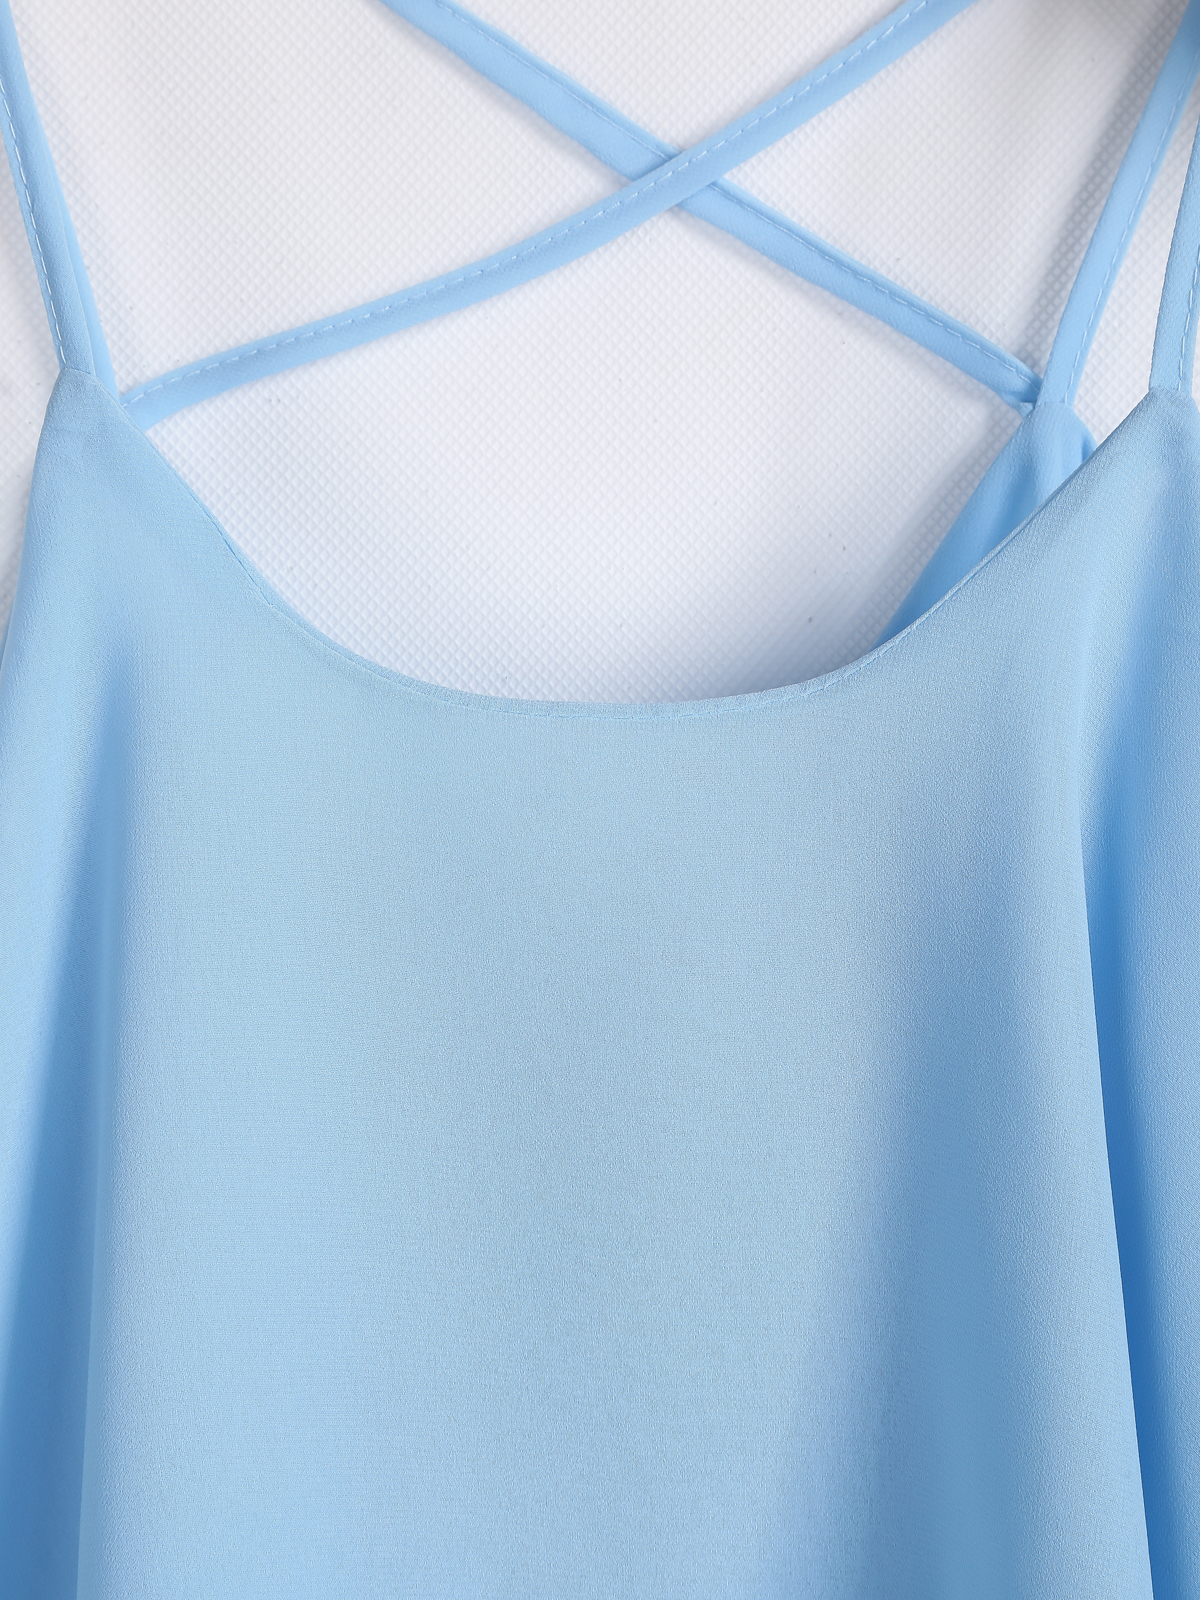 Blue Criss Cross Loose Chiffon Vest - Sheinside.com